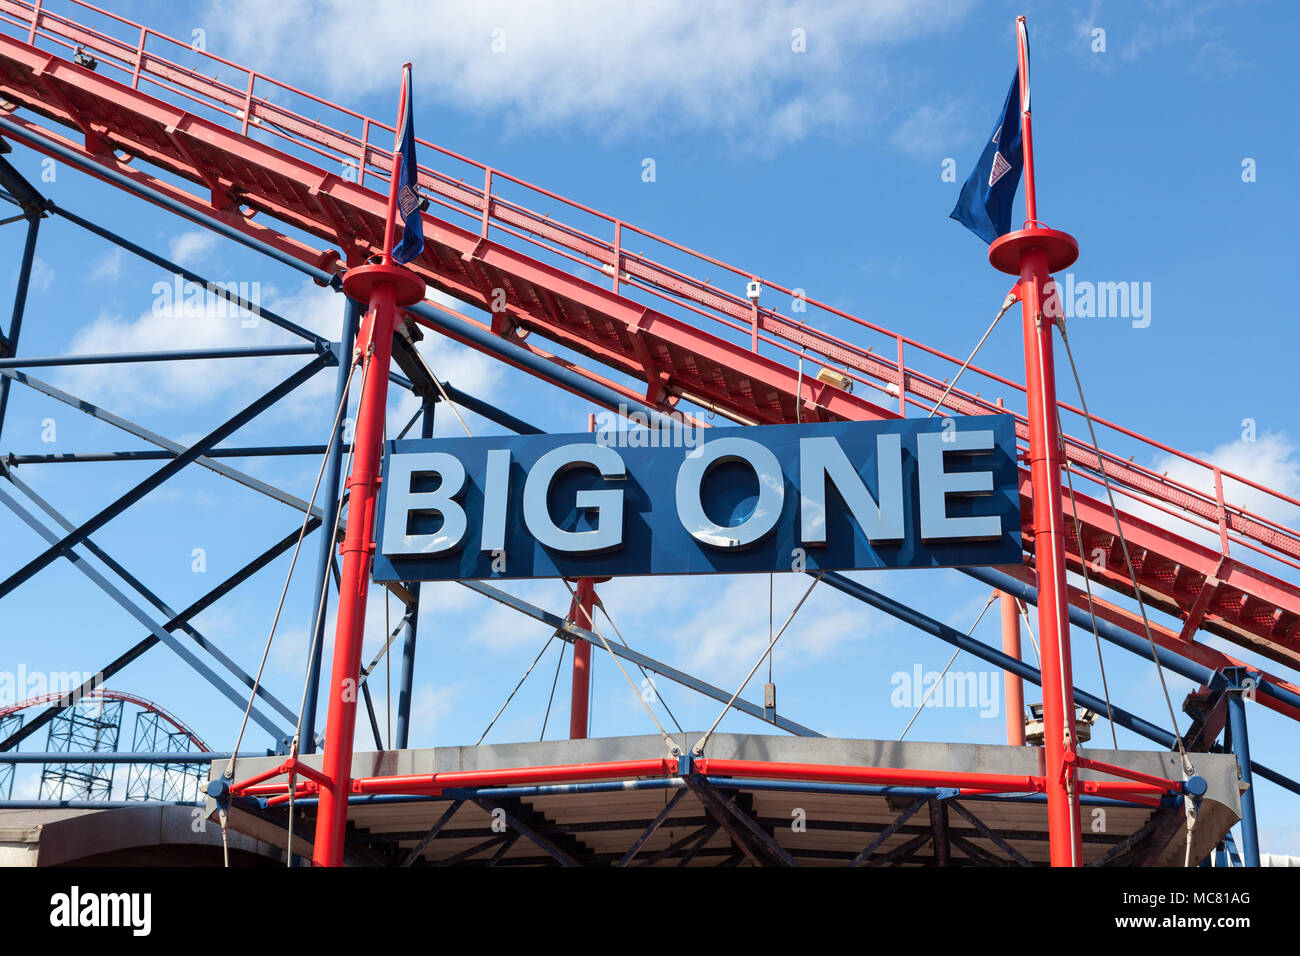 Detail of The Big One, a roller coaster at Blackpool Pleasure Beach, UK. - Stock Image